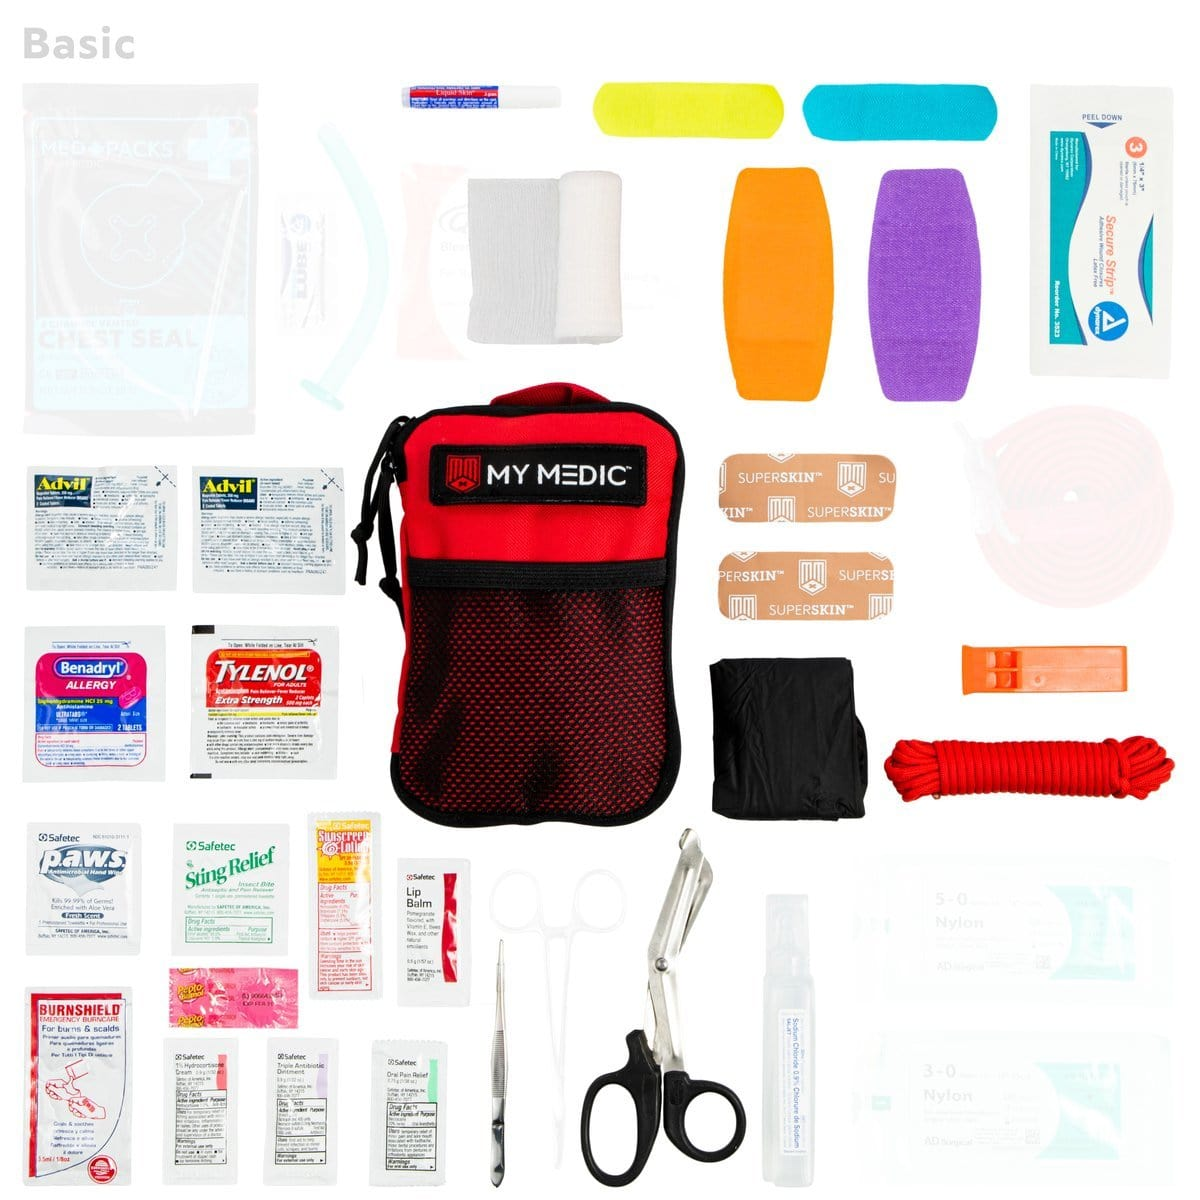 Contents of The Solo: Basic mini first aid kit by MyMedic